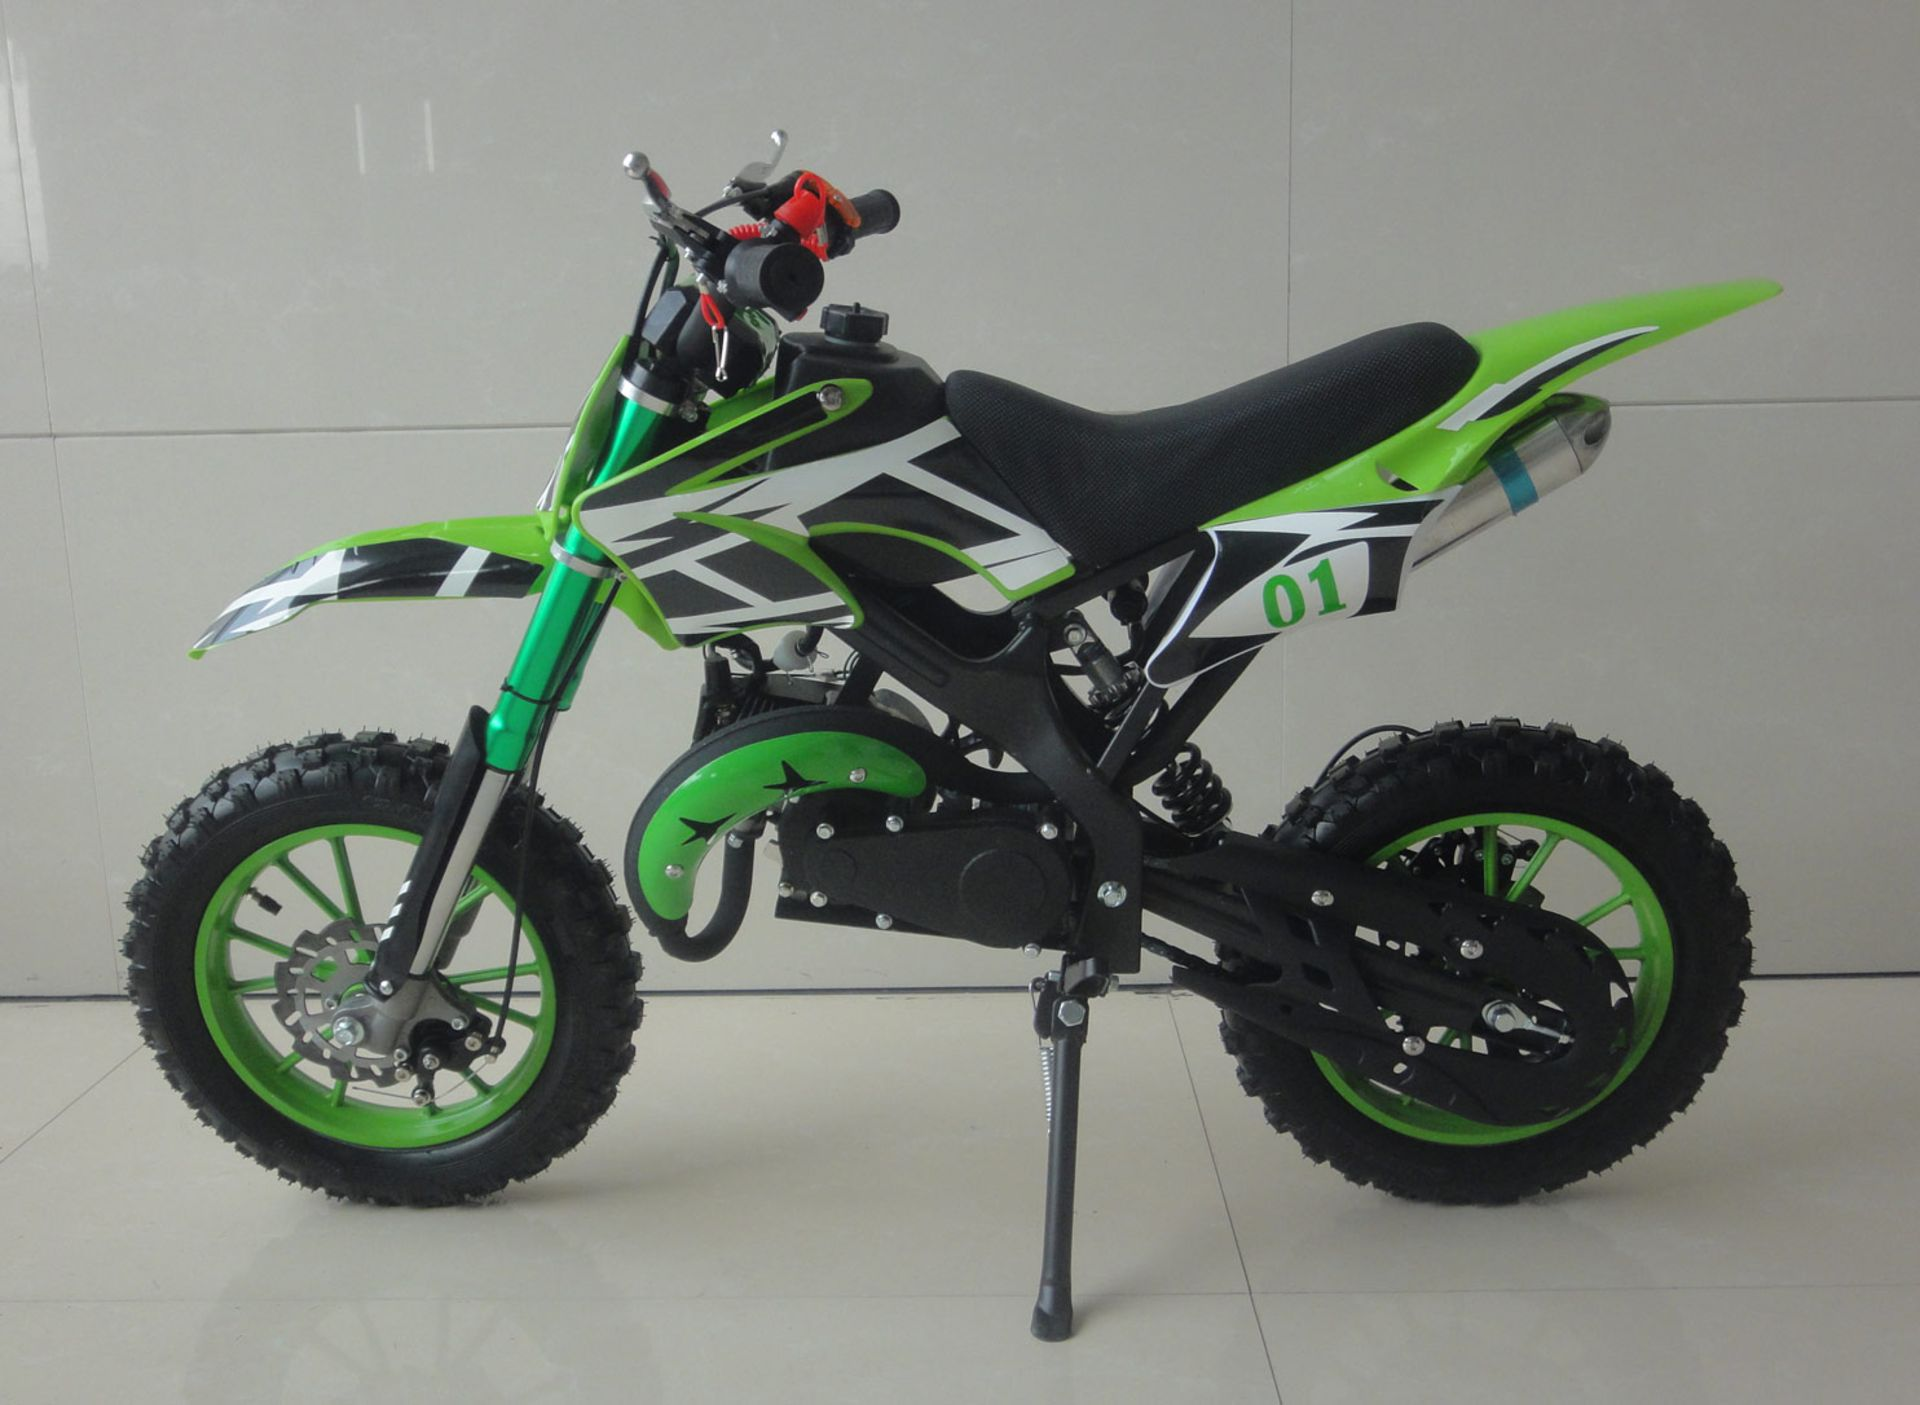 + VAT Brand New 49cc Falcon Mini Dirt Bike - Full Front & Rear Suspension - Disc Brakes - Easy Pull - Image 2 of 6